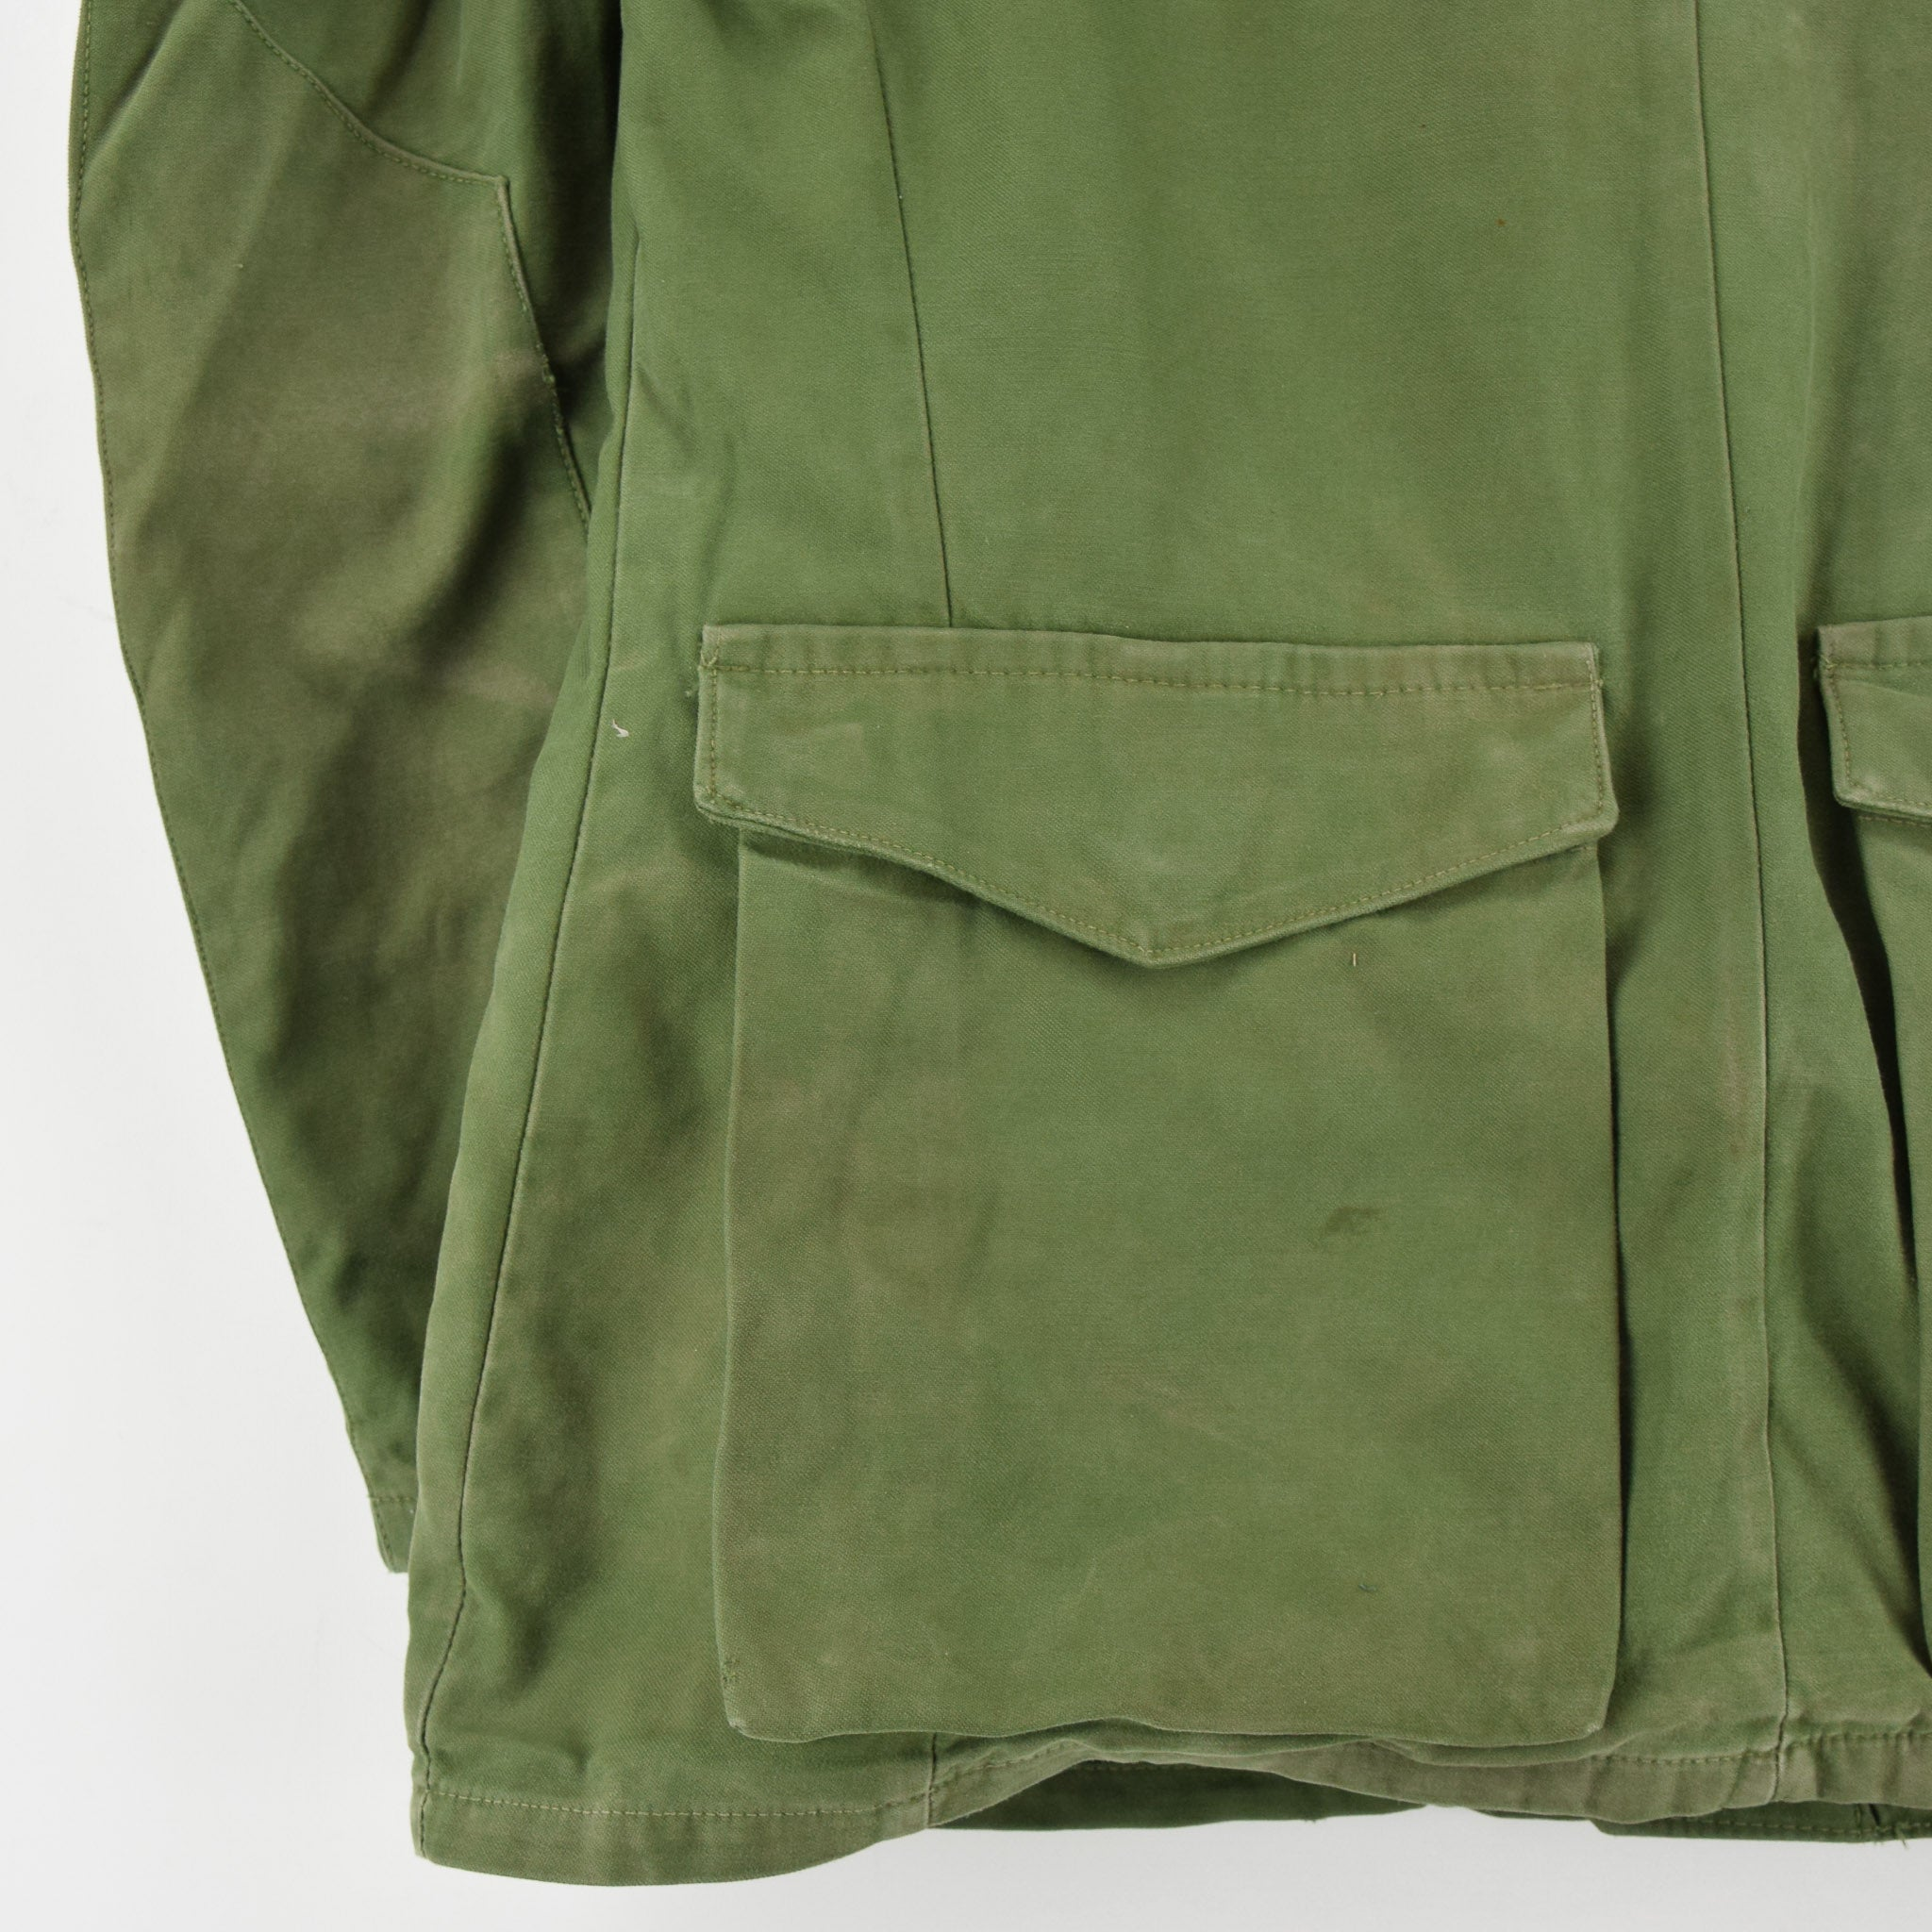 Vintage Well Worn Swedish M59 Field Military Olive Green Worker Style Jacket M back hem